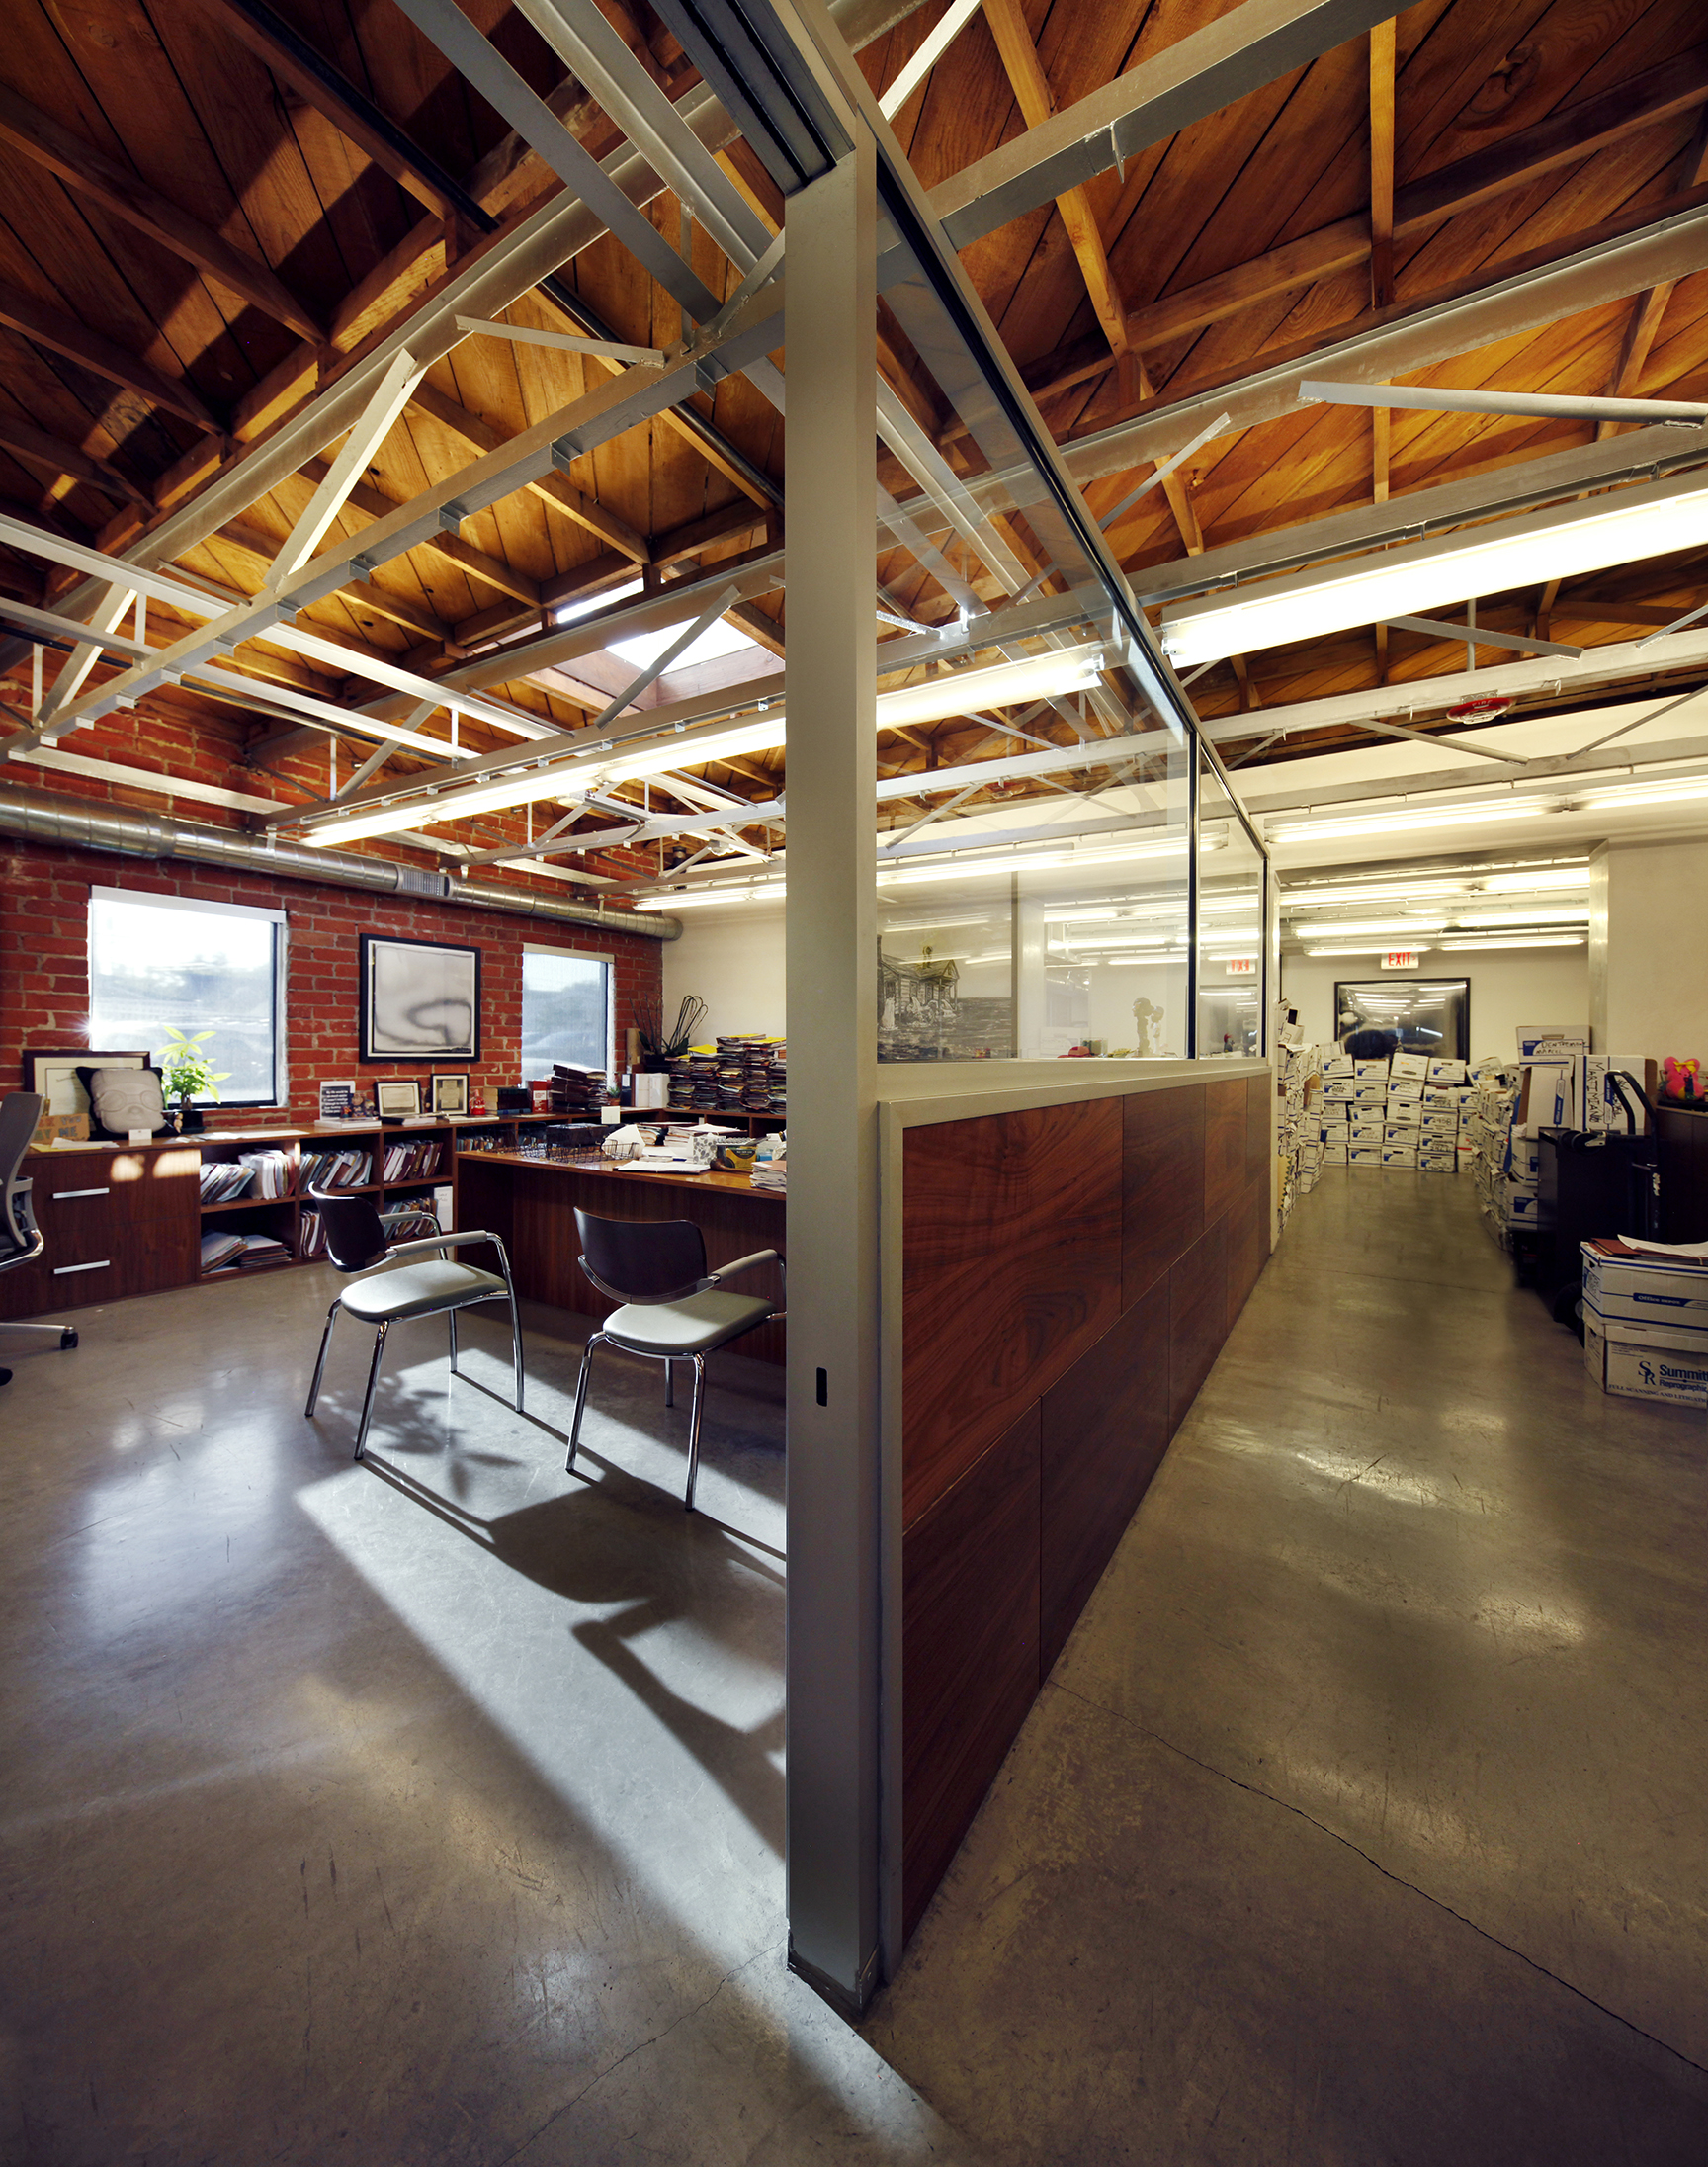 S.E.A.-Studio-Environmental-Architecture-David-Hertz-FAIA-Carpenter-Zuckerman-Rowley-Santa-Monica-adaptive-reuse-sustainable-regenerative-restorative-green-design-warehouse-truss-upcycle-recycle-law-office-commercial-building-life-cycle-signage-7.JPG